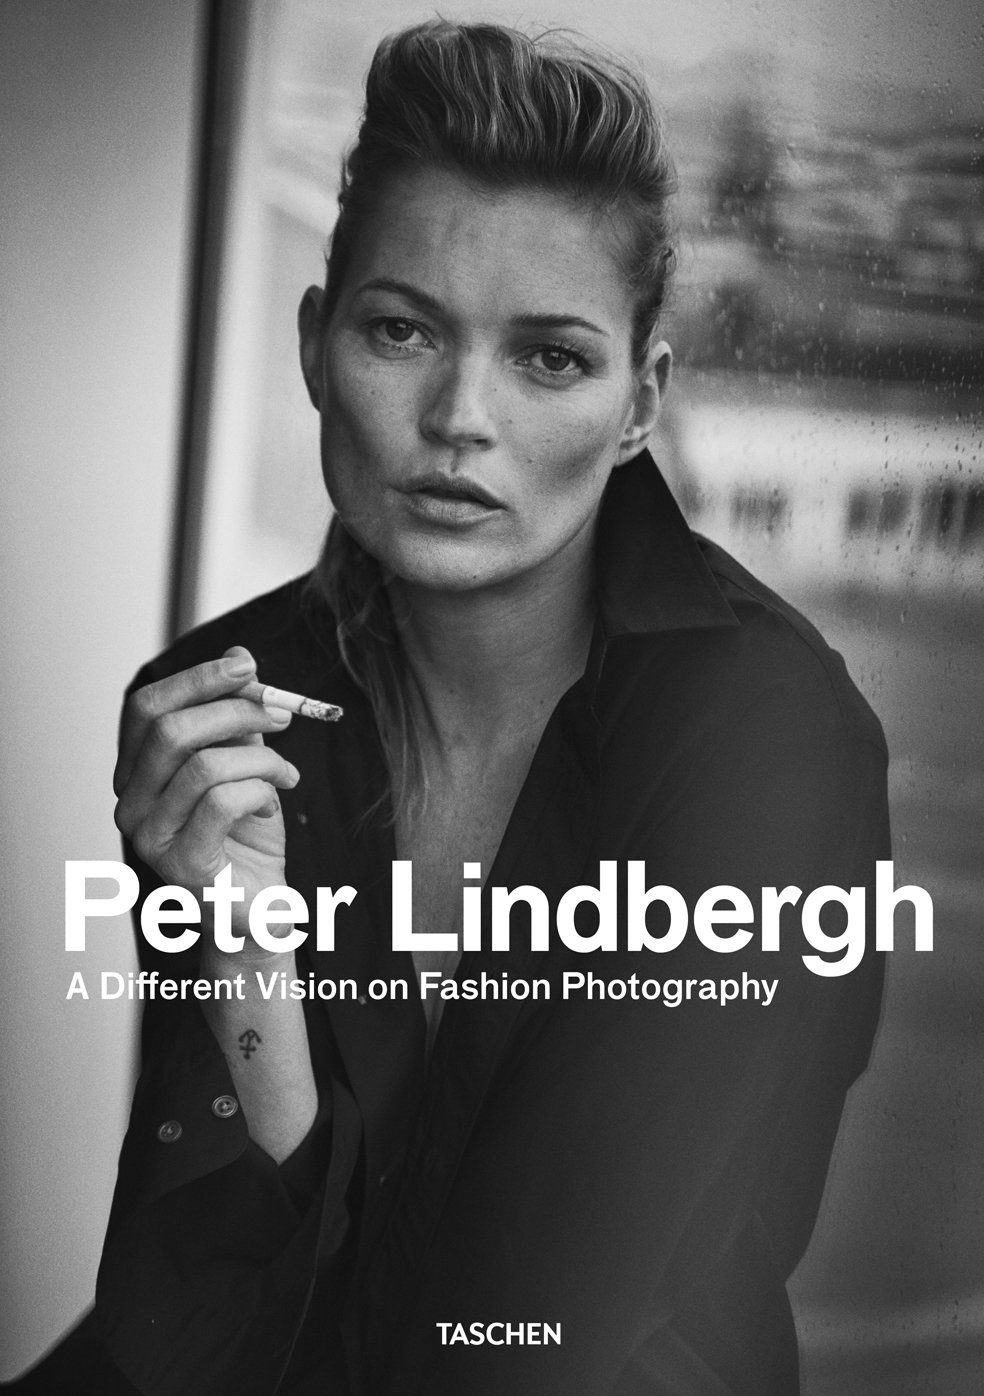 Zien: 'A Different Vision on Fashion Photography'